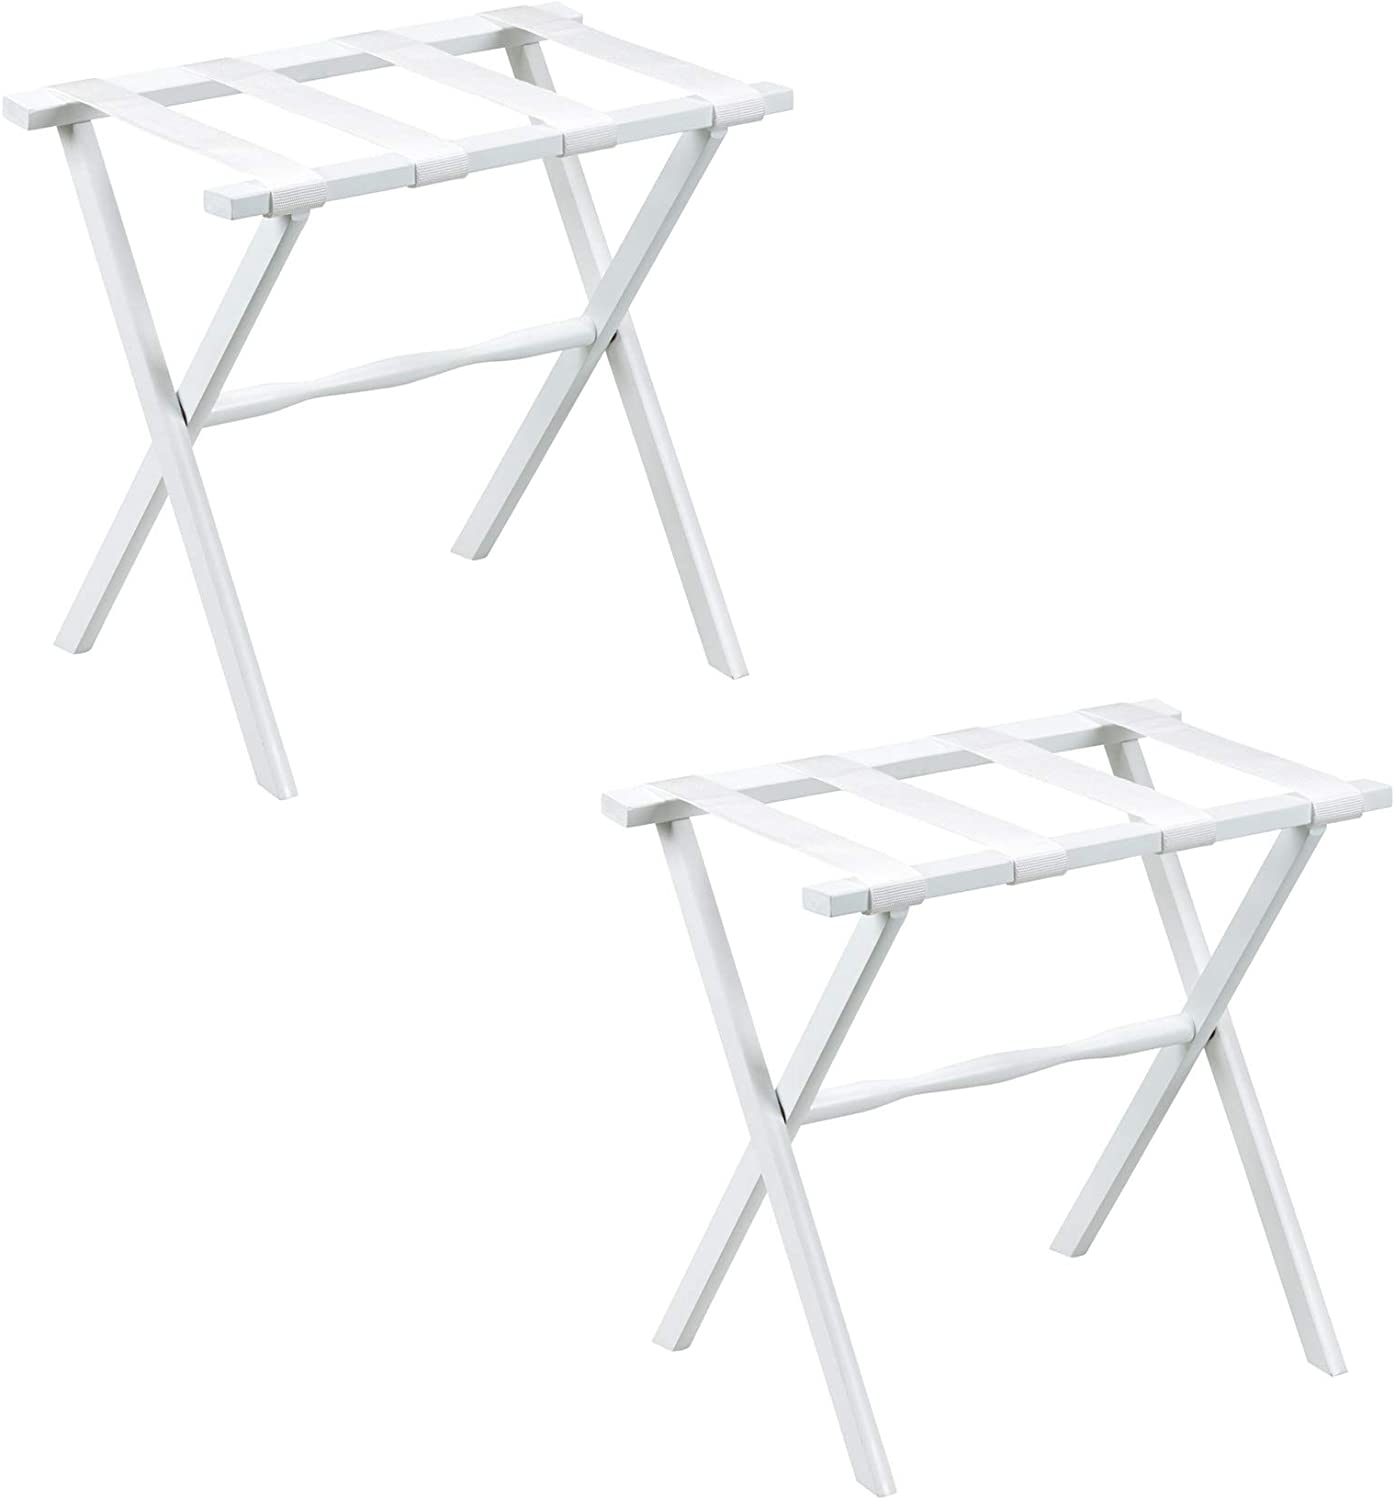 Gate House Furniture 2-Pack White Straight Leg Wood Luggage Rack 4 White Nylon Straps